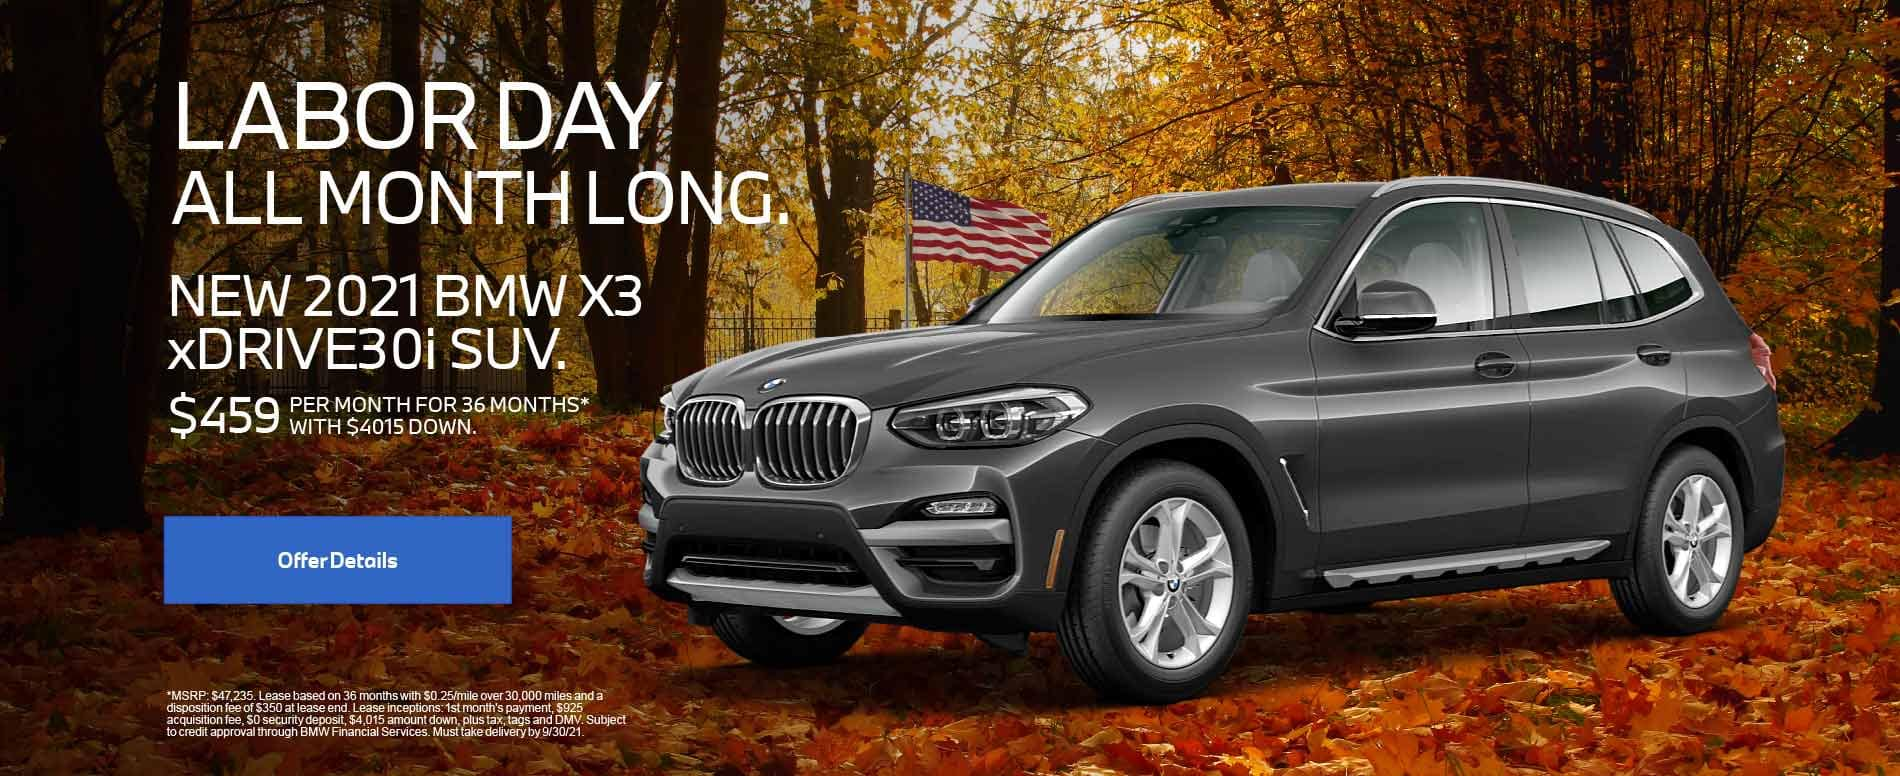 New 2021 BMW X3 xDRIVE30i SUV. $459 PER MONTH FOR 36 months with $4,015 Down.